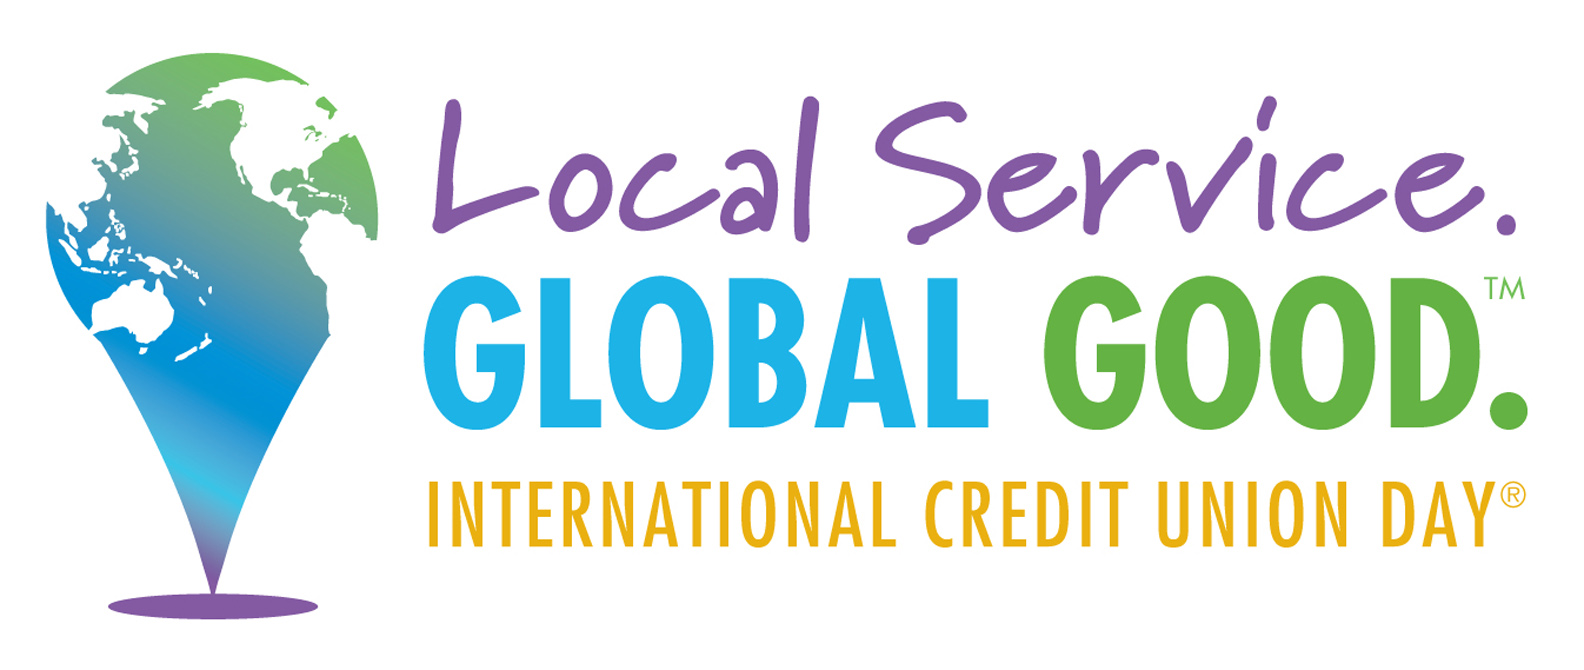 Local Service. Global Good.